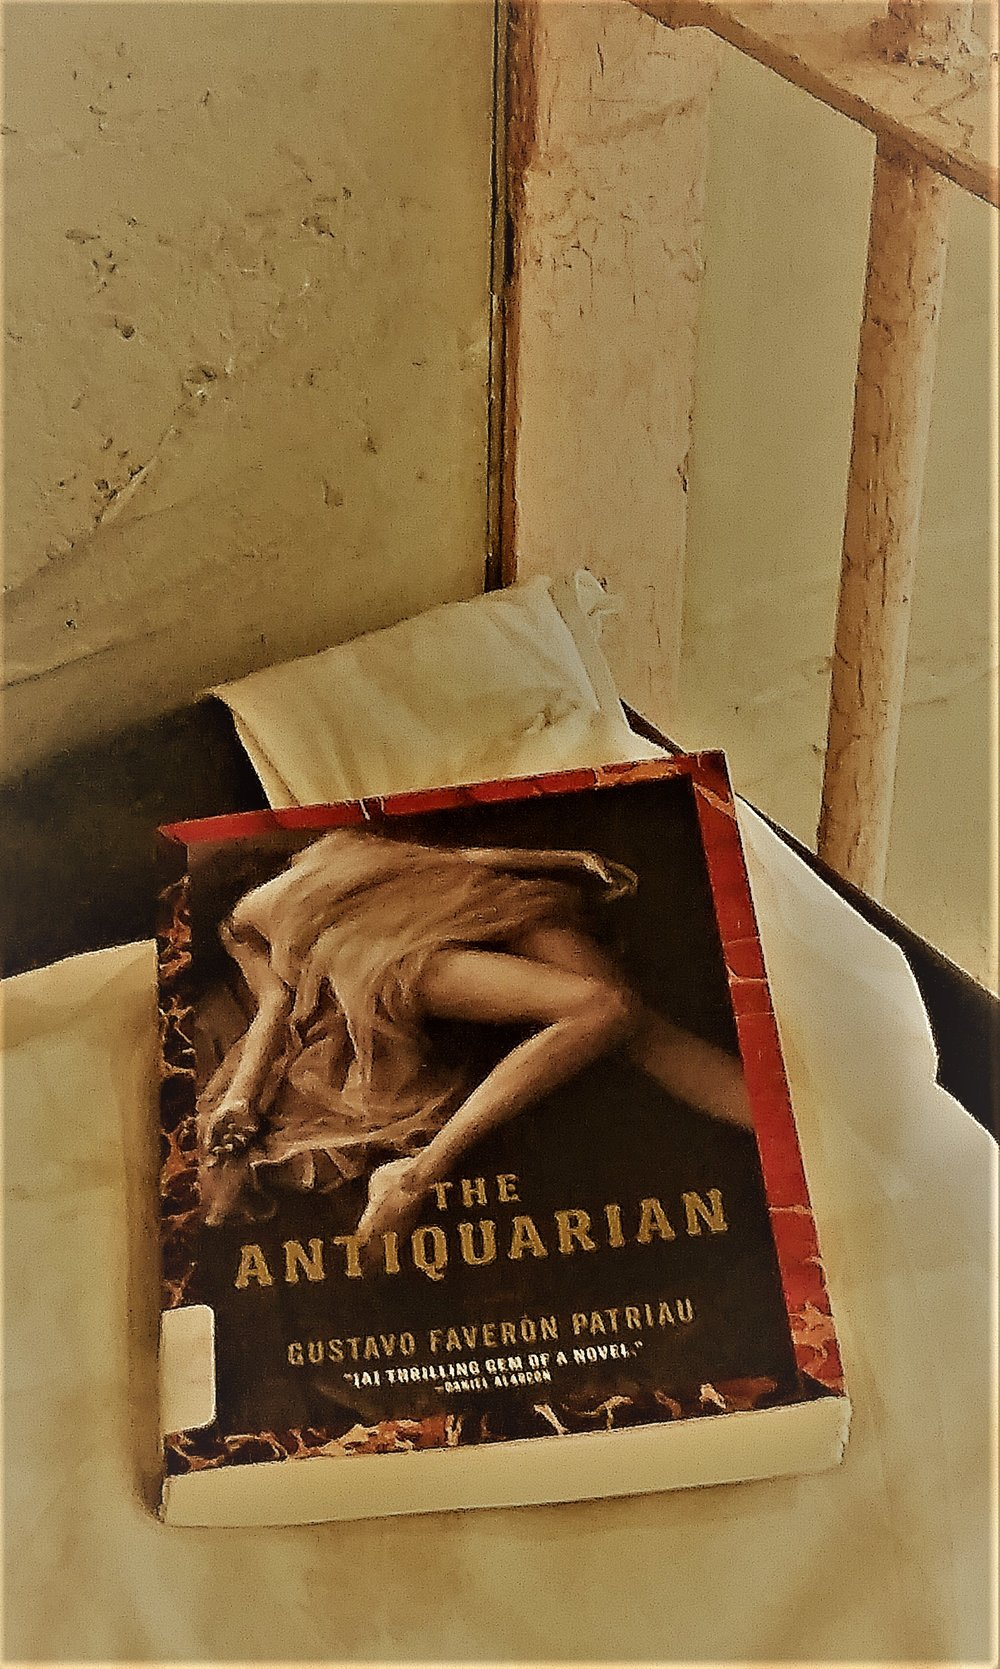 (Click the image to purchase the book) I took this picture in a mock-up of an alcatraz cell in a hotel in San Francisco the day before I was able to tour alcatraz.  There were a lot of tourists taking photos...They gave me plenty of room as I began staging and taking pictures of this book...lol